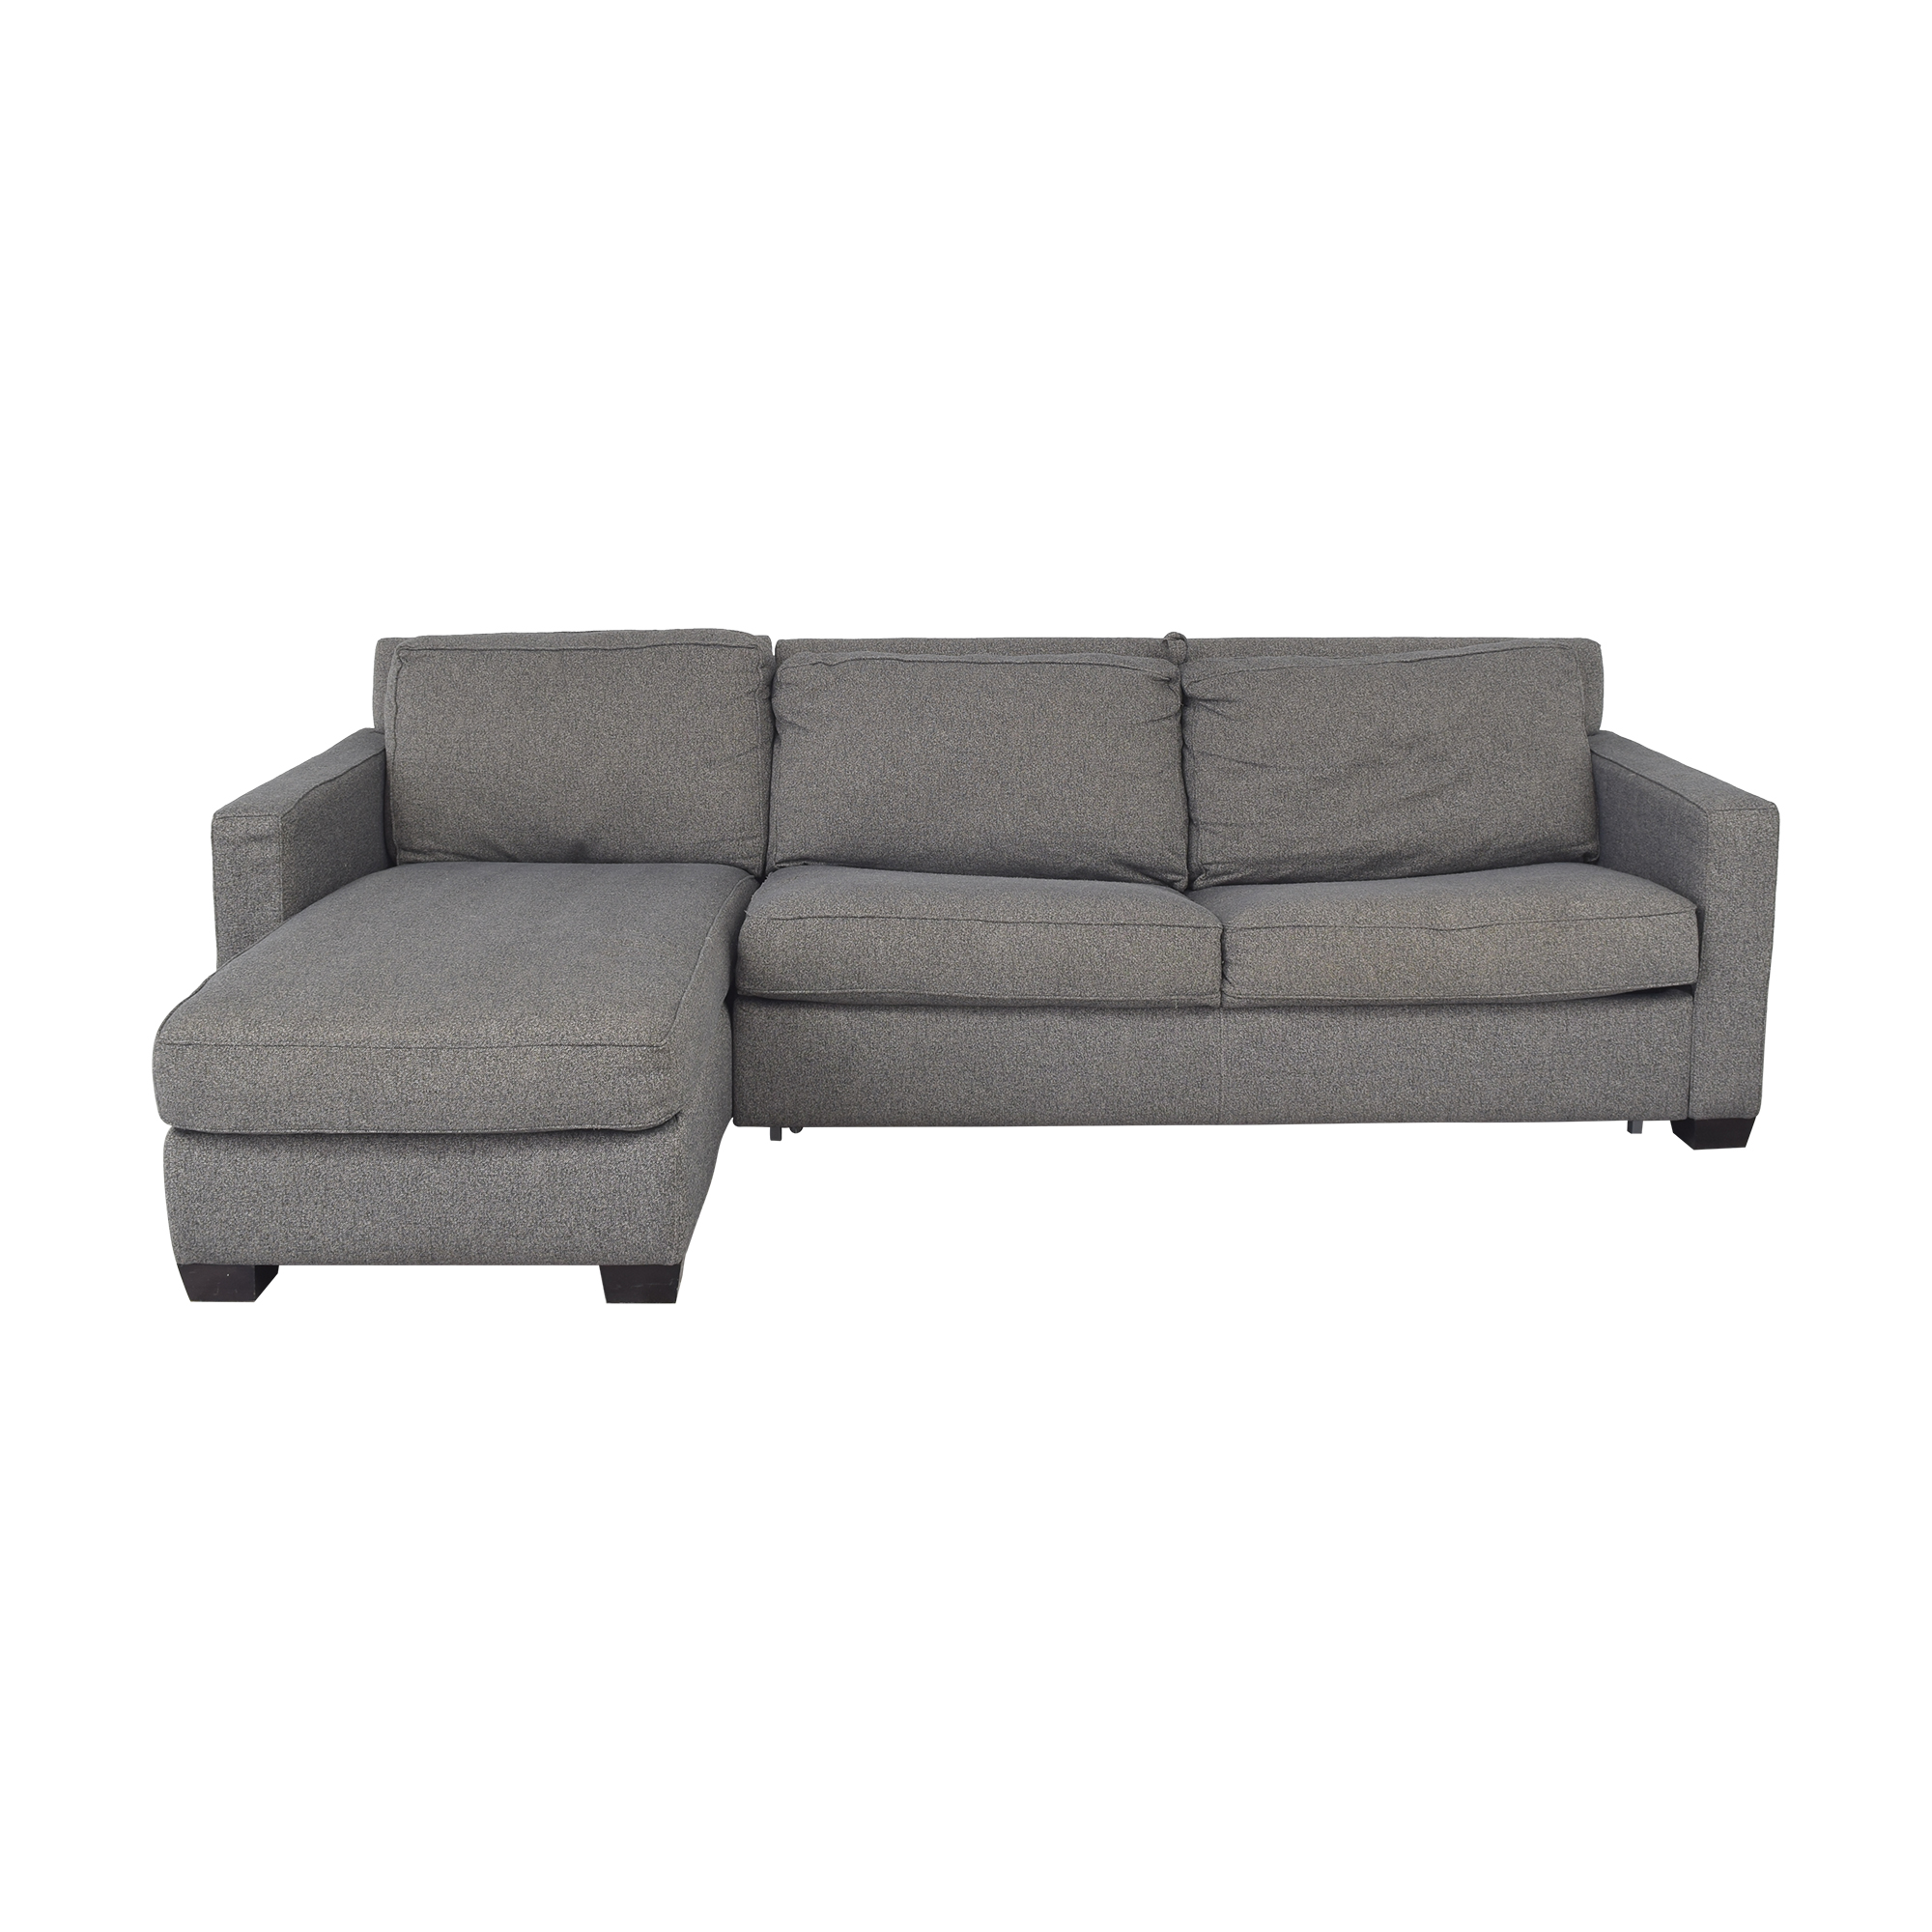 West Elm West Elm Henry 2-Piece Full Sleeper Sectional with Storage nj